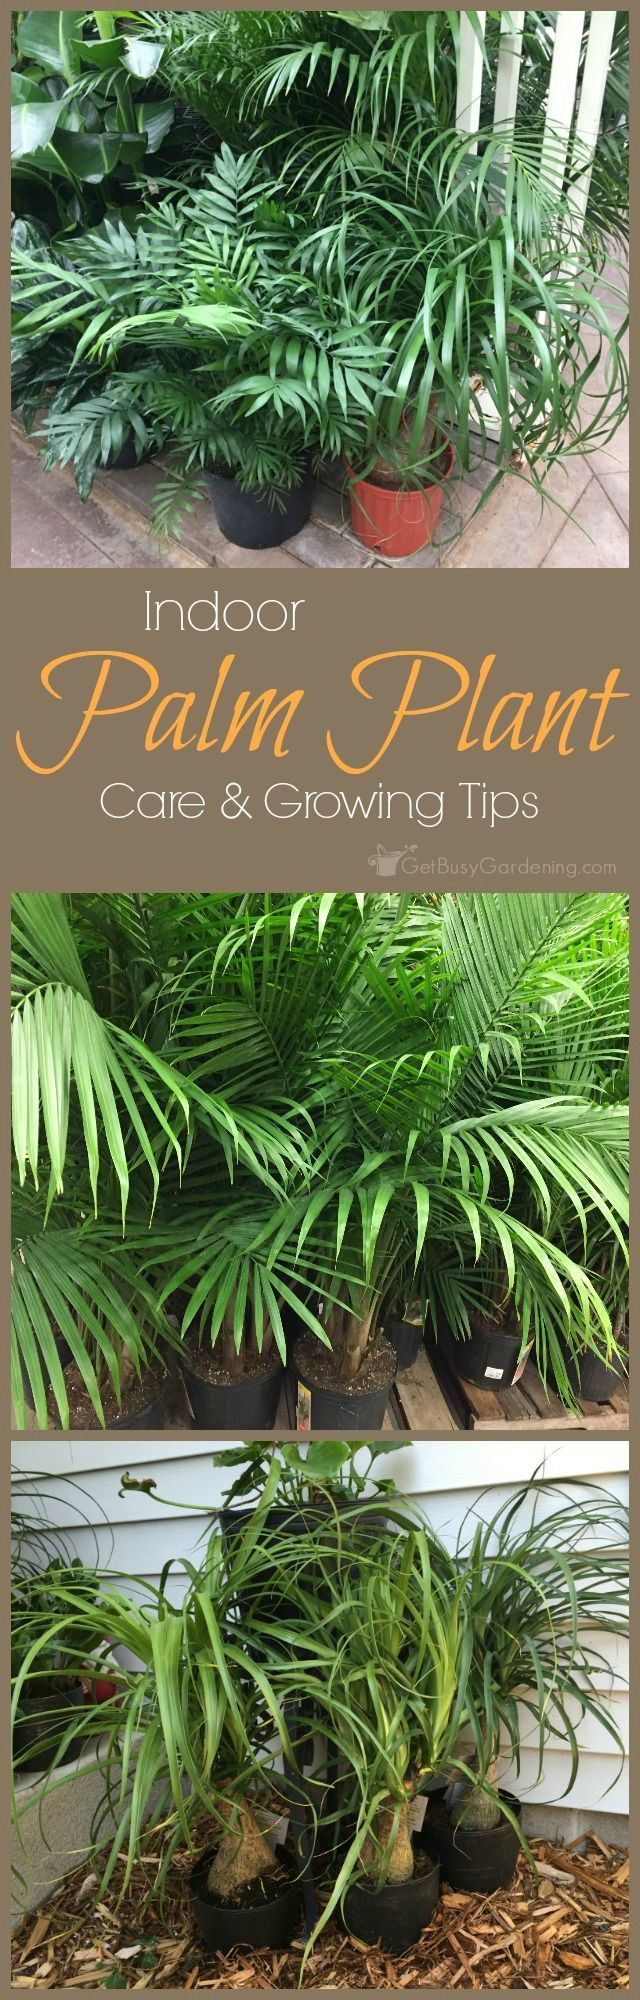 Best 25+ Indoor palm trees ideas on Pinterest | Palm plants, Palm tree plant  and Indoor palms